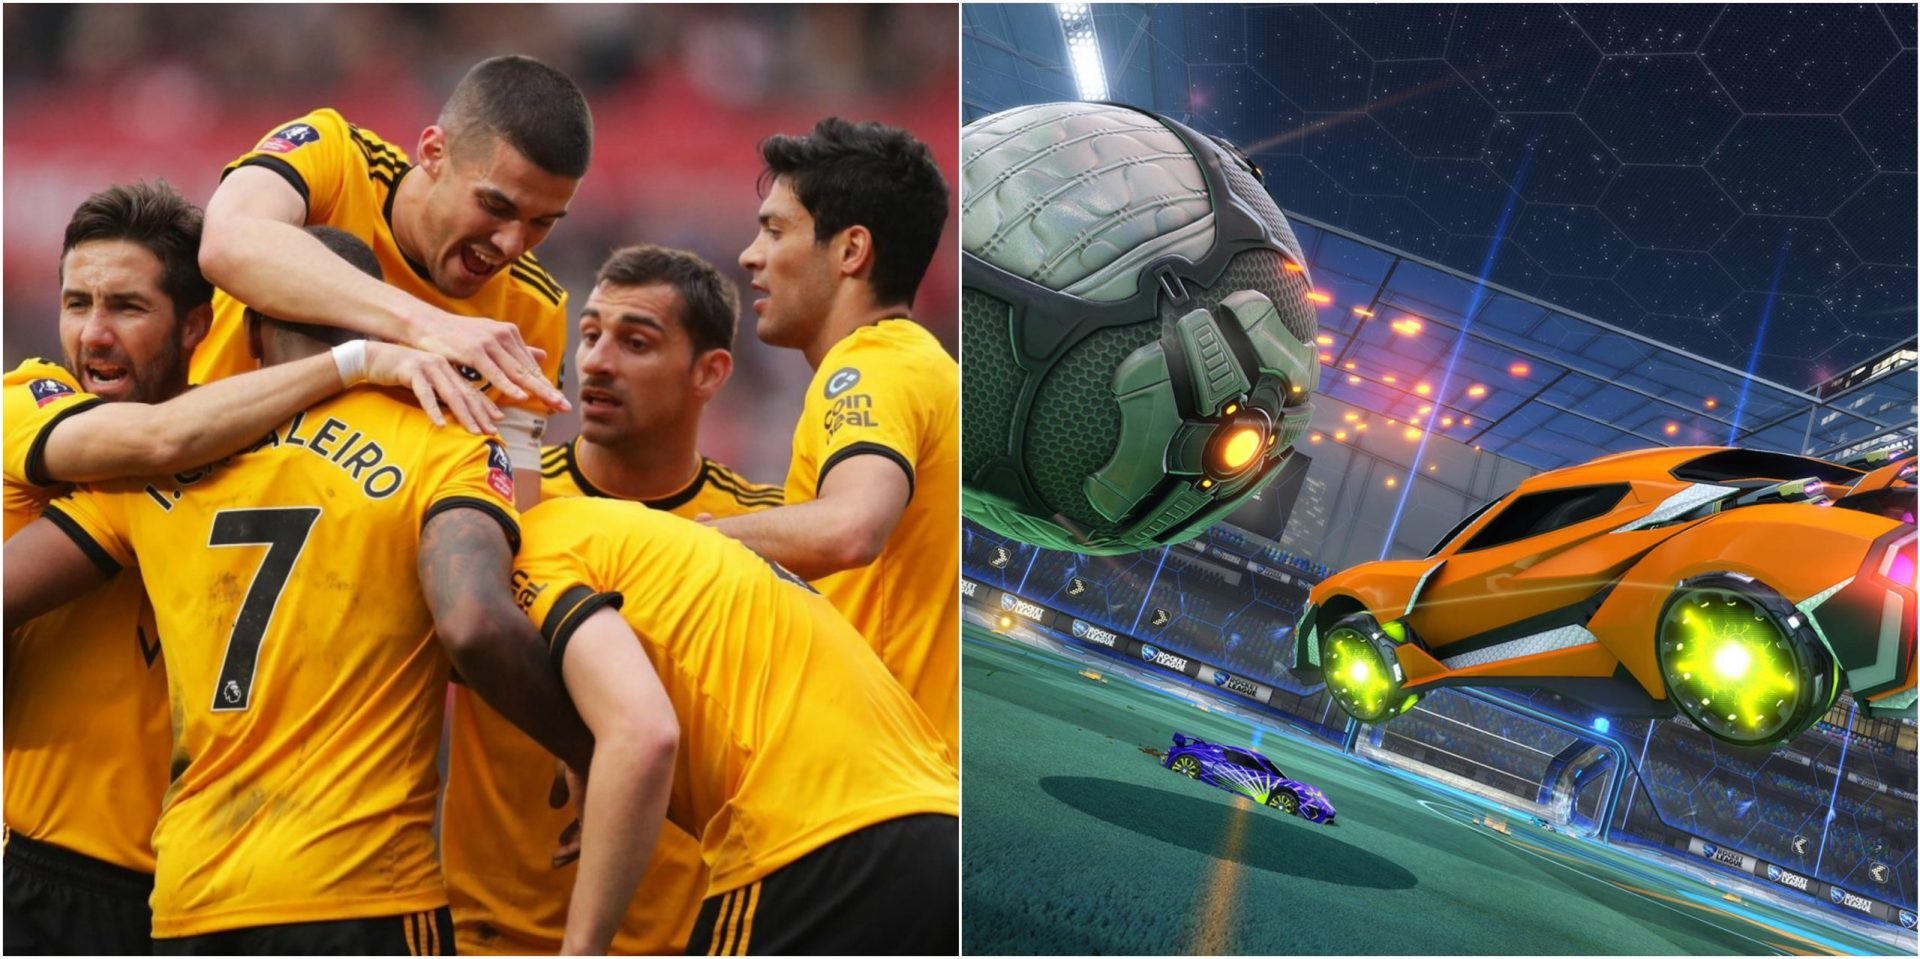 Wolves enter Rocket League Championship Series as the 1st Premier League football club - THE SPORTS ROOM